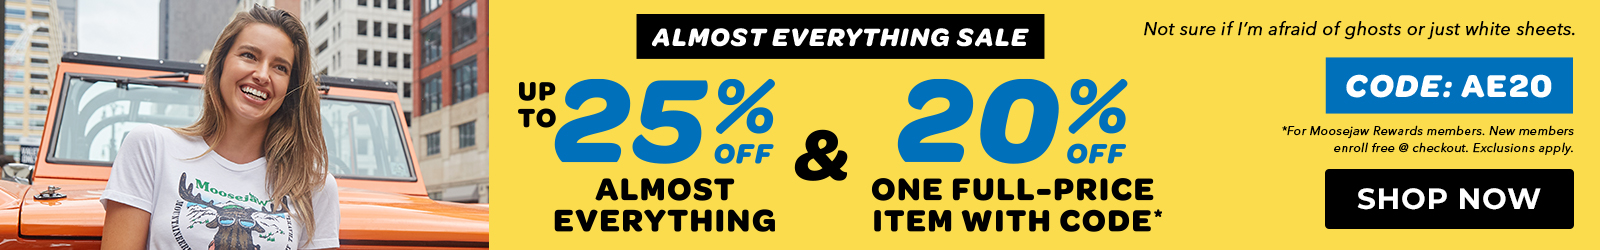 Moosejaw's Almost Everything Sale